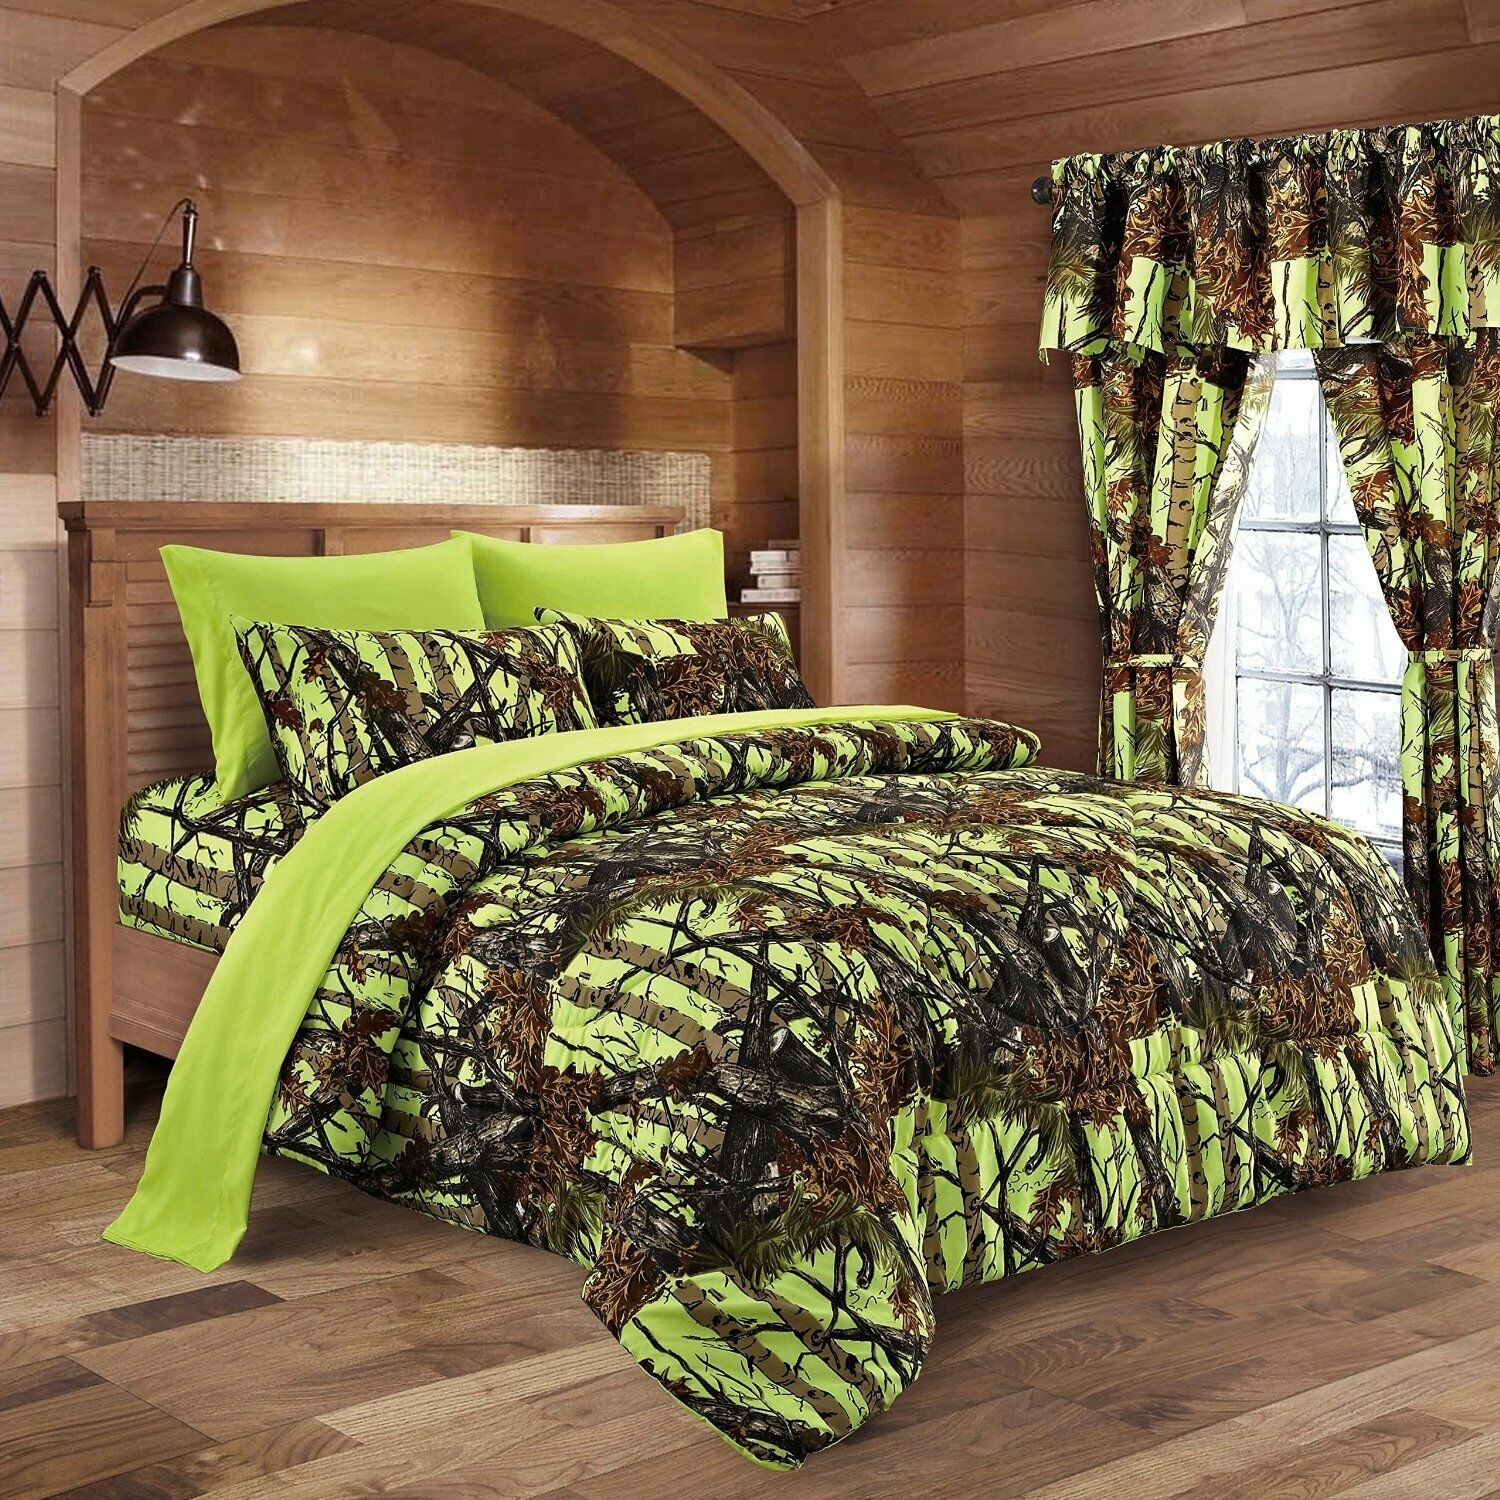 7 PC REGAL COMFORT LIME Grün CAMO COMFORTER SHEETS PILLOW CASES CAMOUFLAGE KING